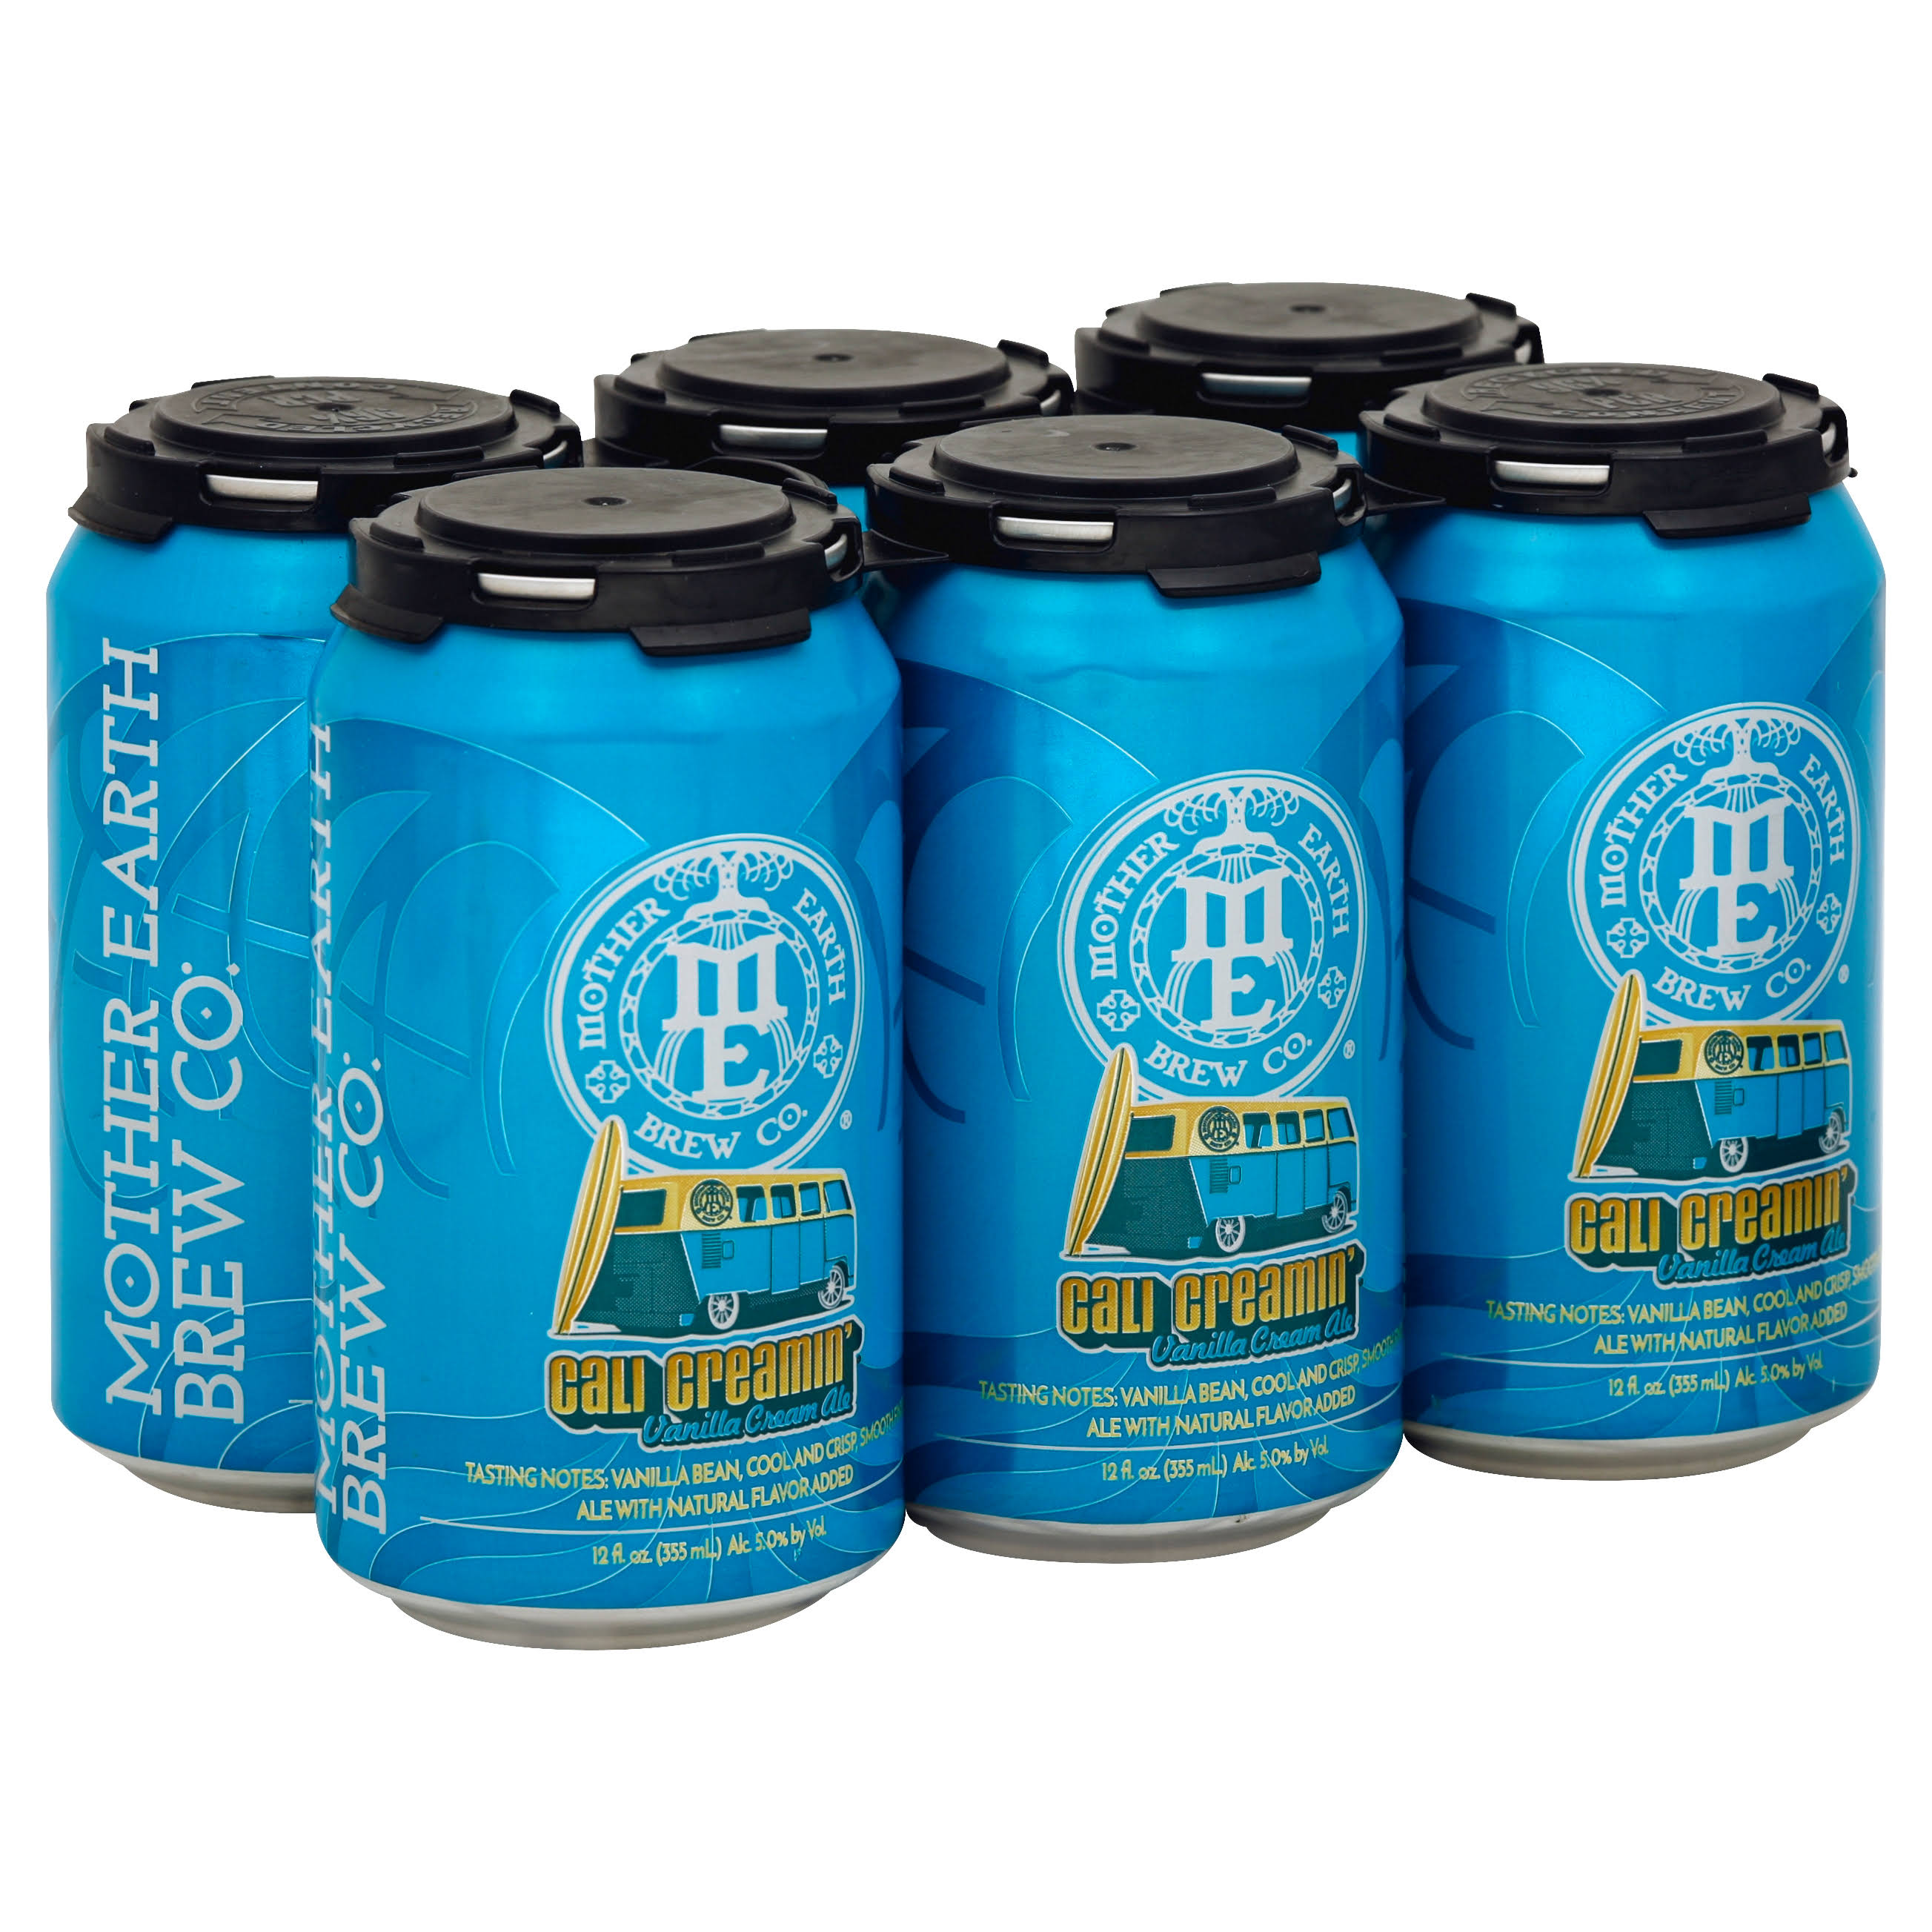 Mother Earth Brew Cali Creamin' Vanilla Cream Ale - 12oz, 6 Pack